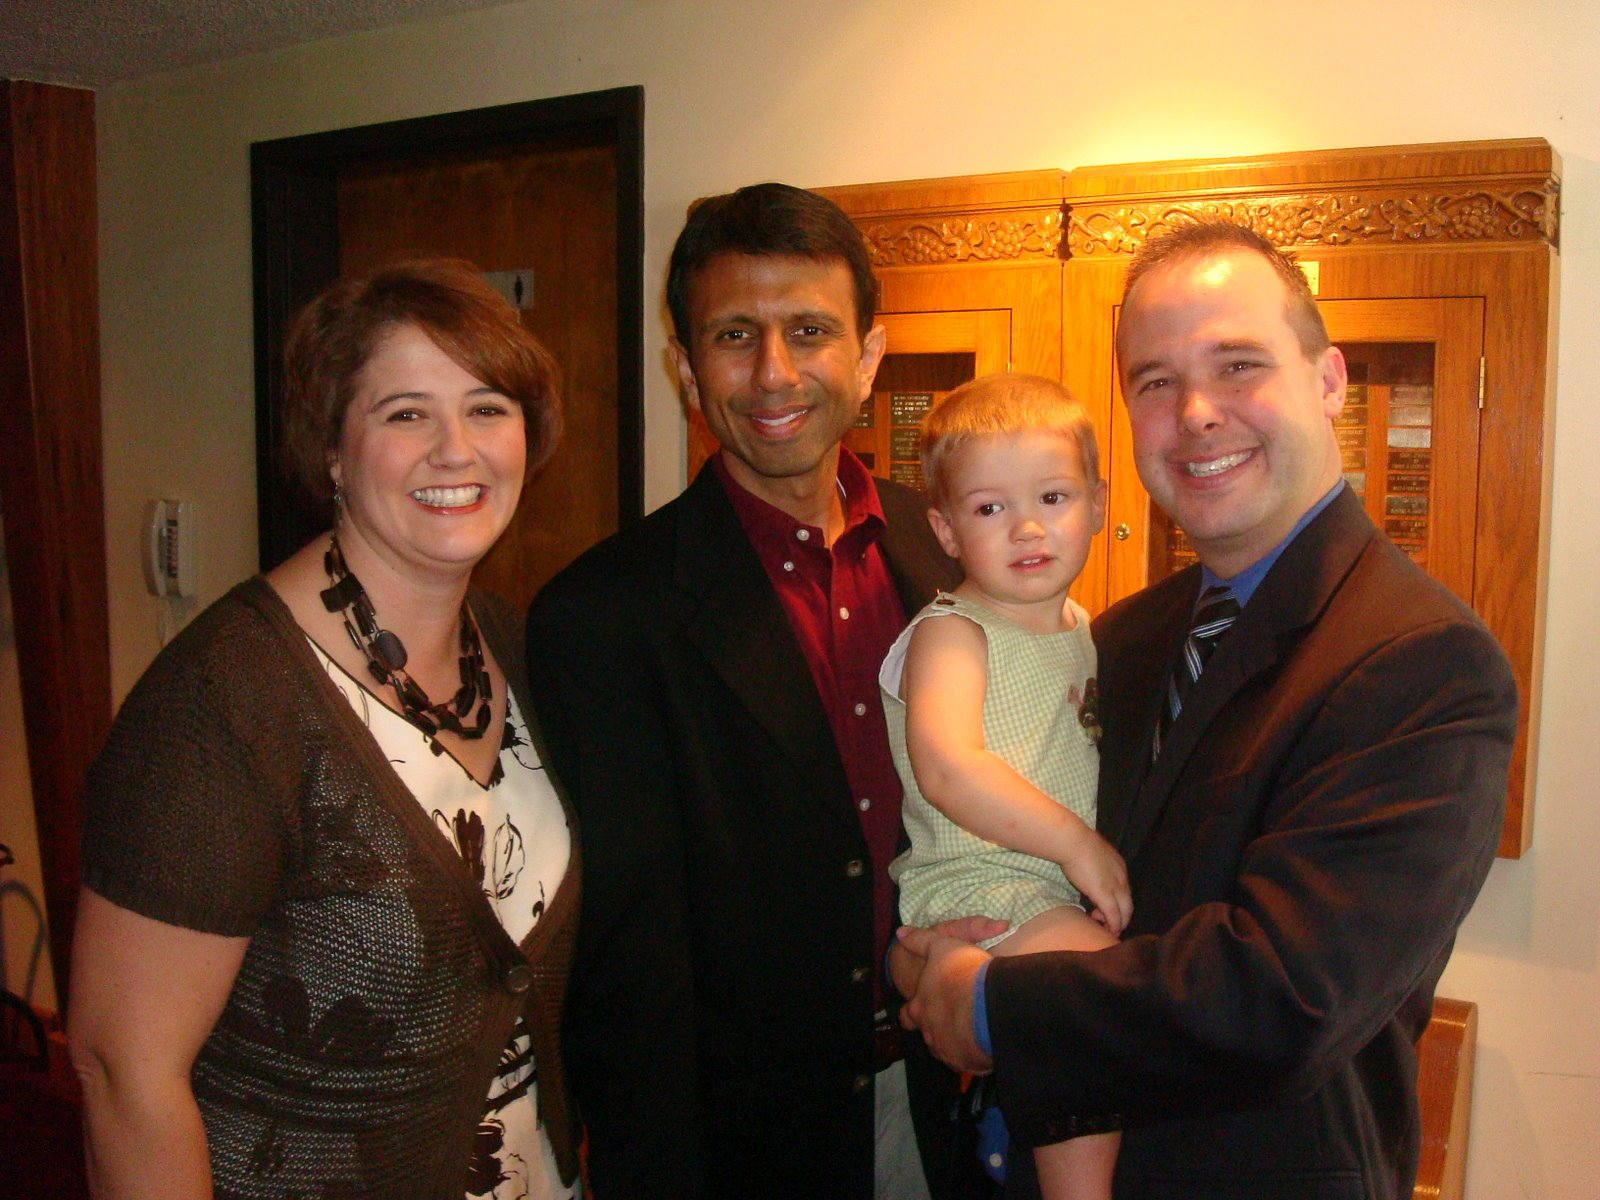 The Glenns with Bobby Jindal